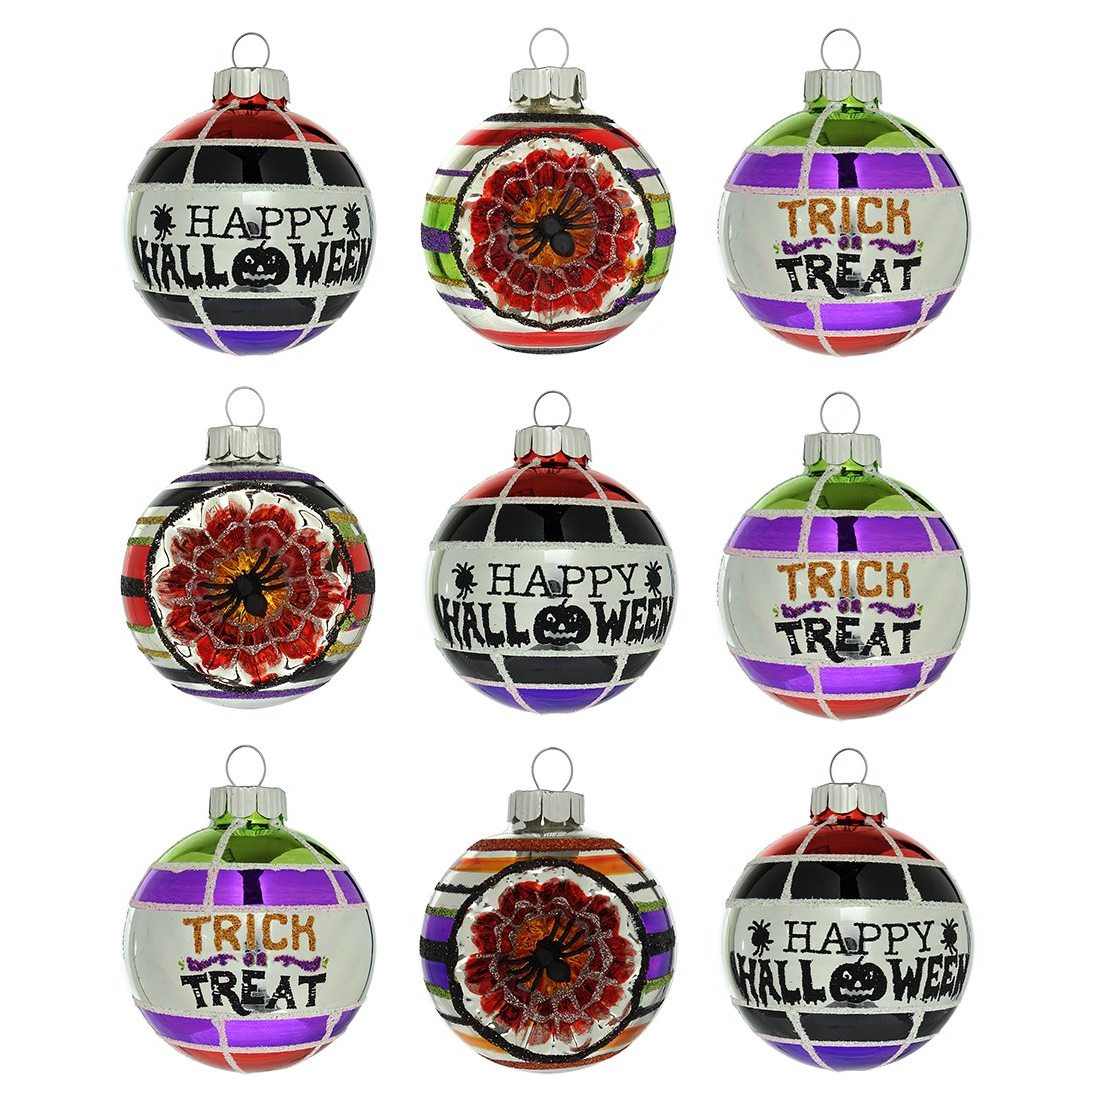 12 HALLOWEEN GLASS SPIDERWEB BALL ORNAMENTS GLITTER SHINY BRITE RADKO